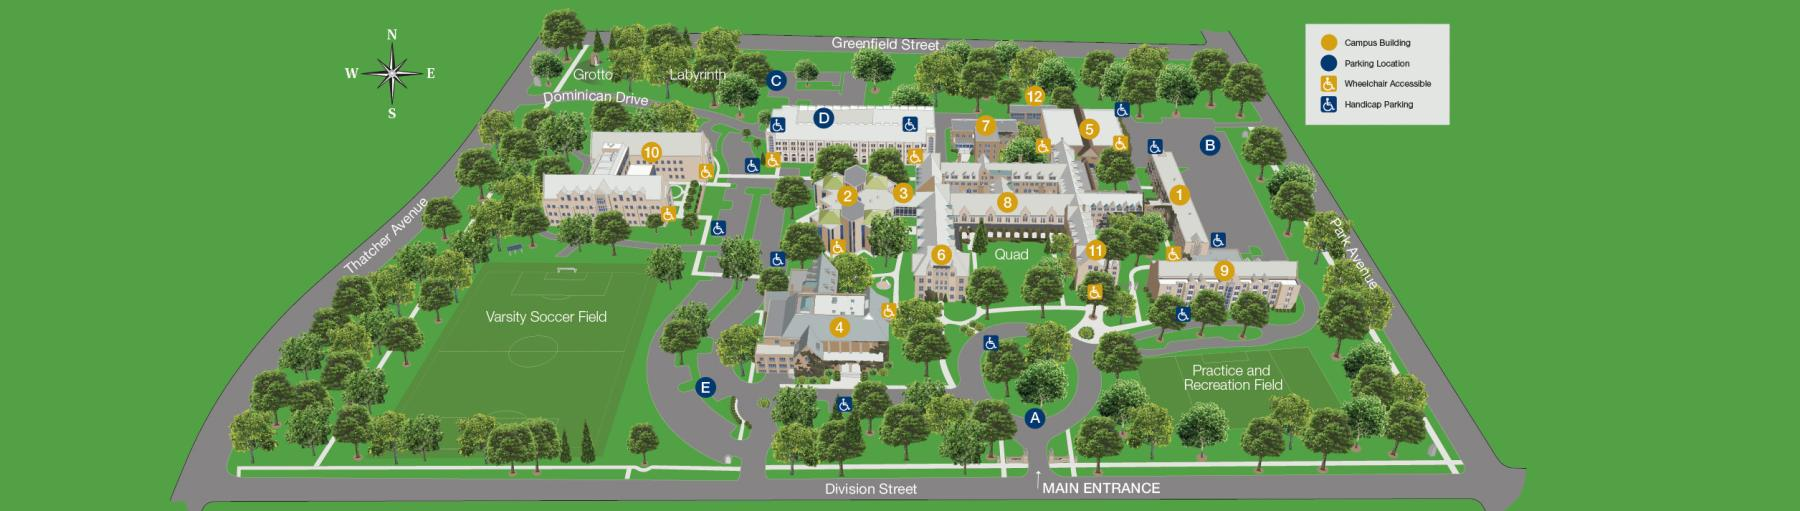 Old Dominion Campus Map.Directions And Campus Map Dominican University